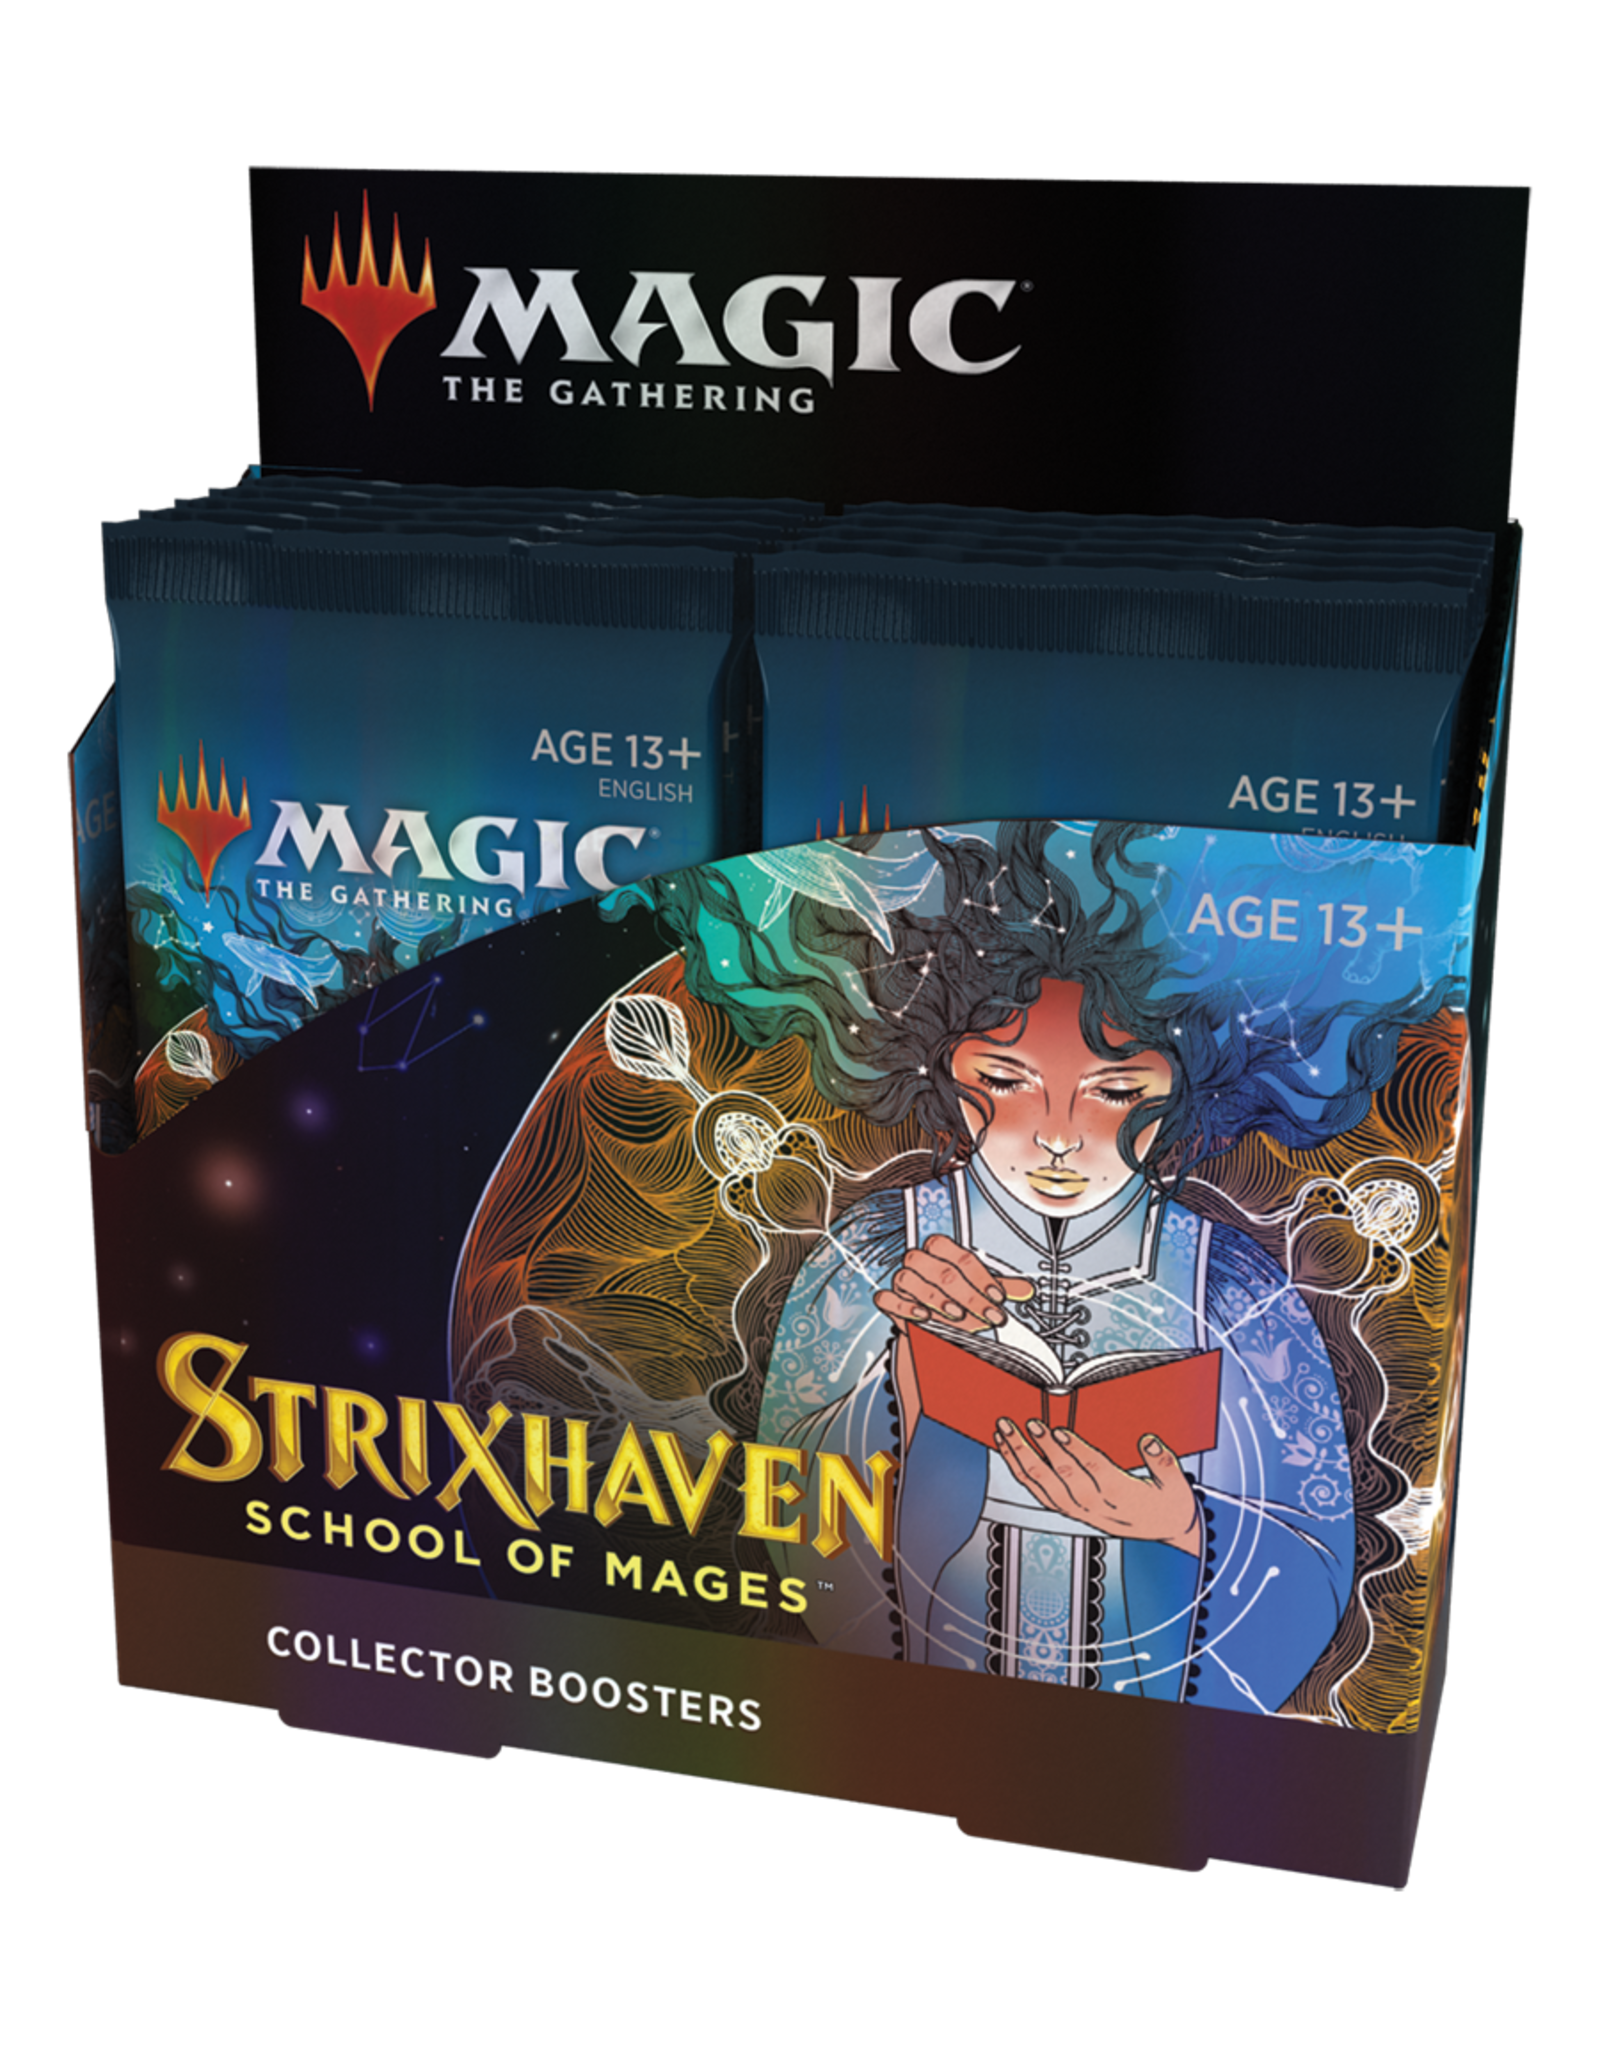 Magic: The Gathering Magic: The Gathering - Strixhaven: School of Mages - Collector Booster Box